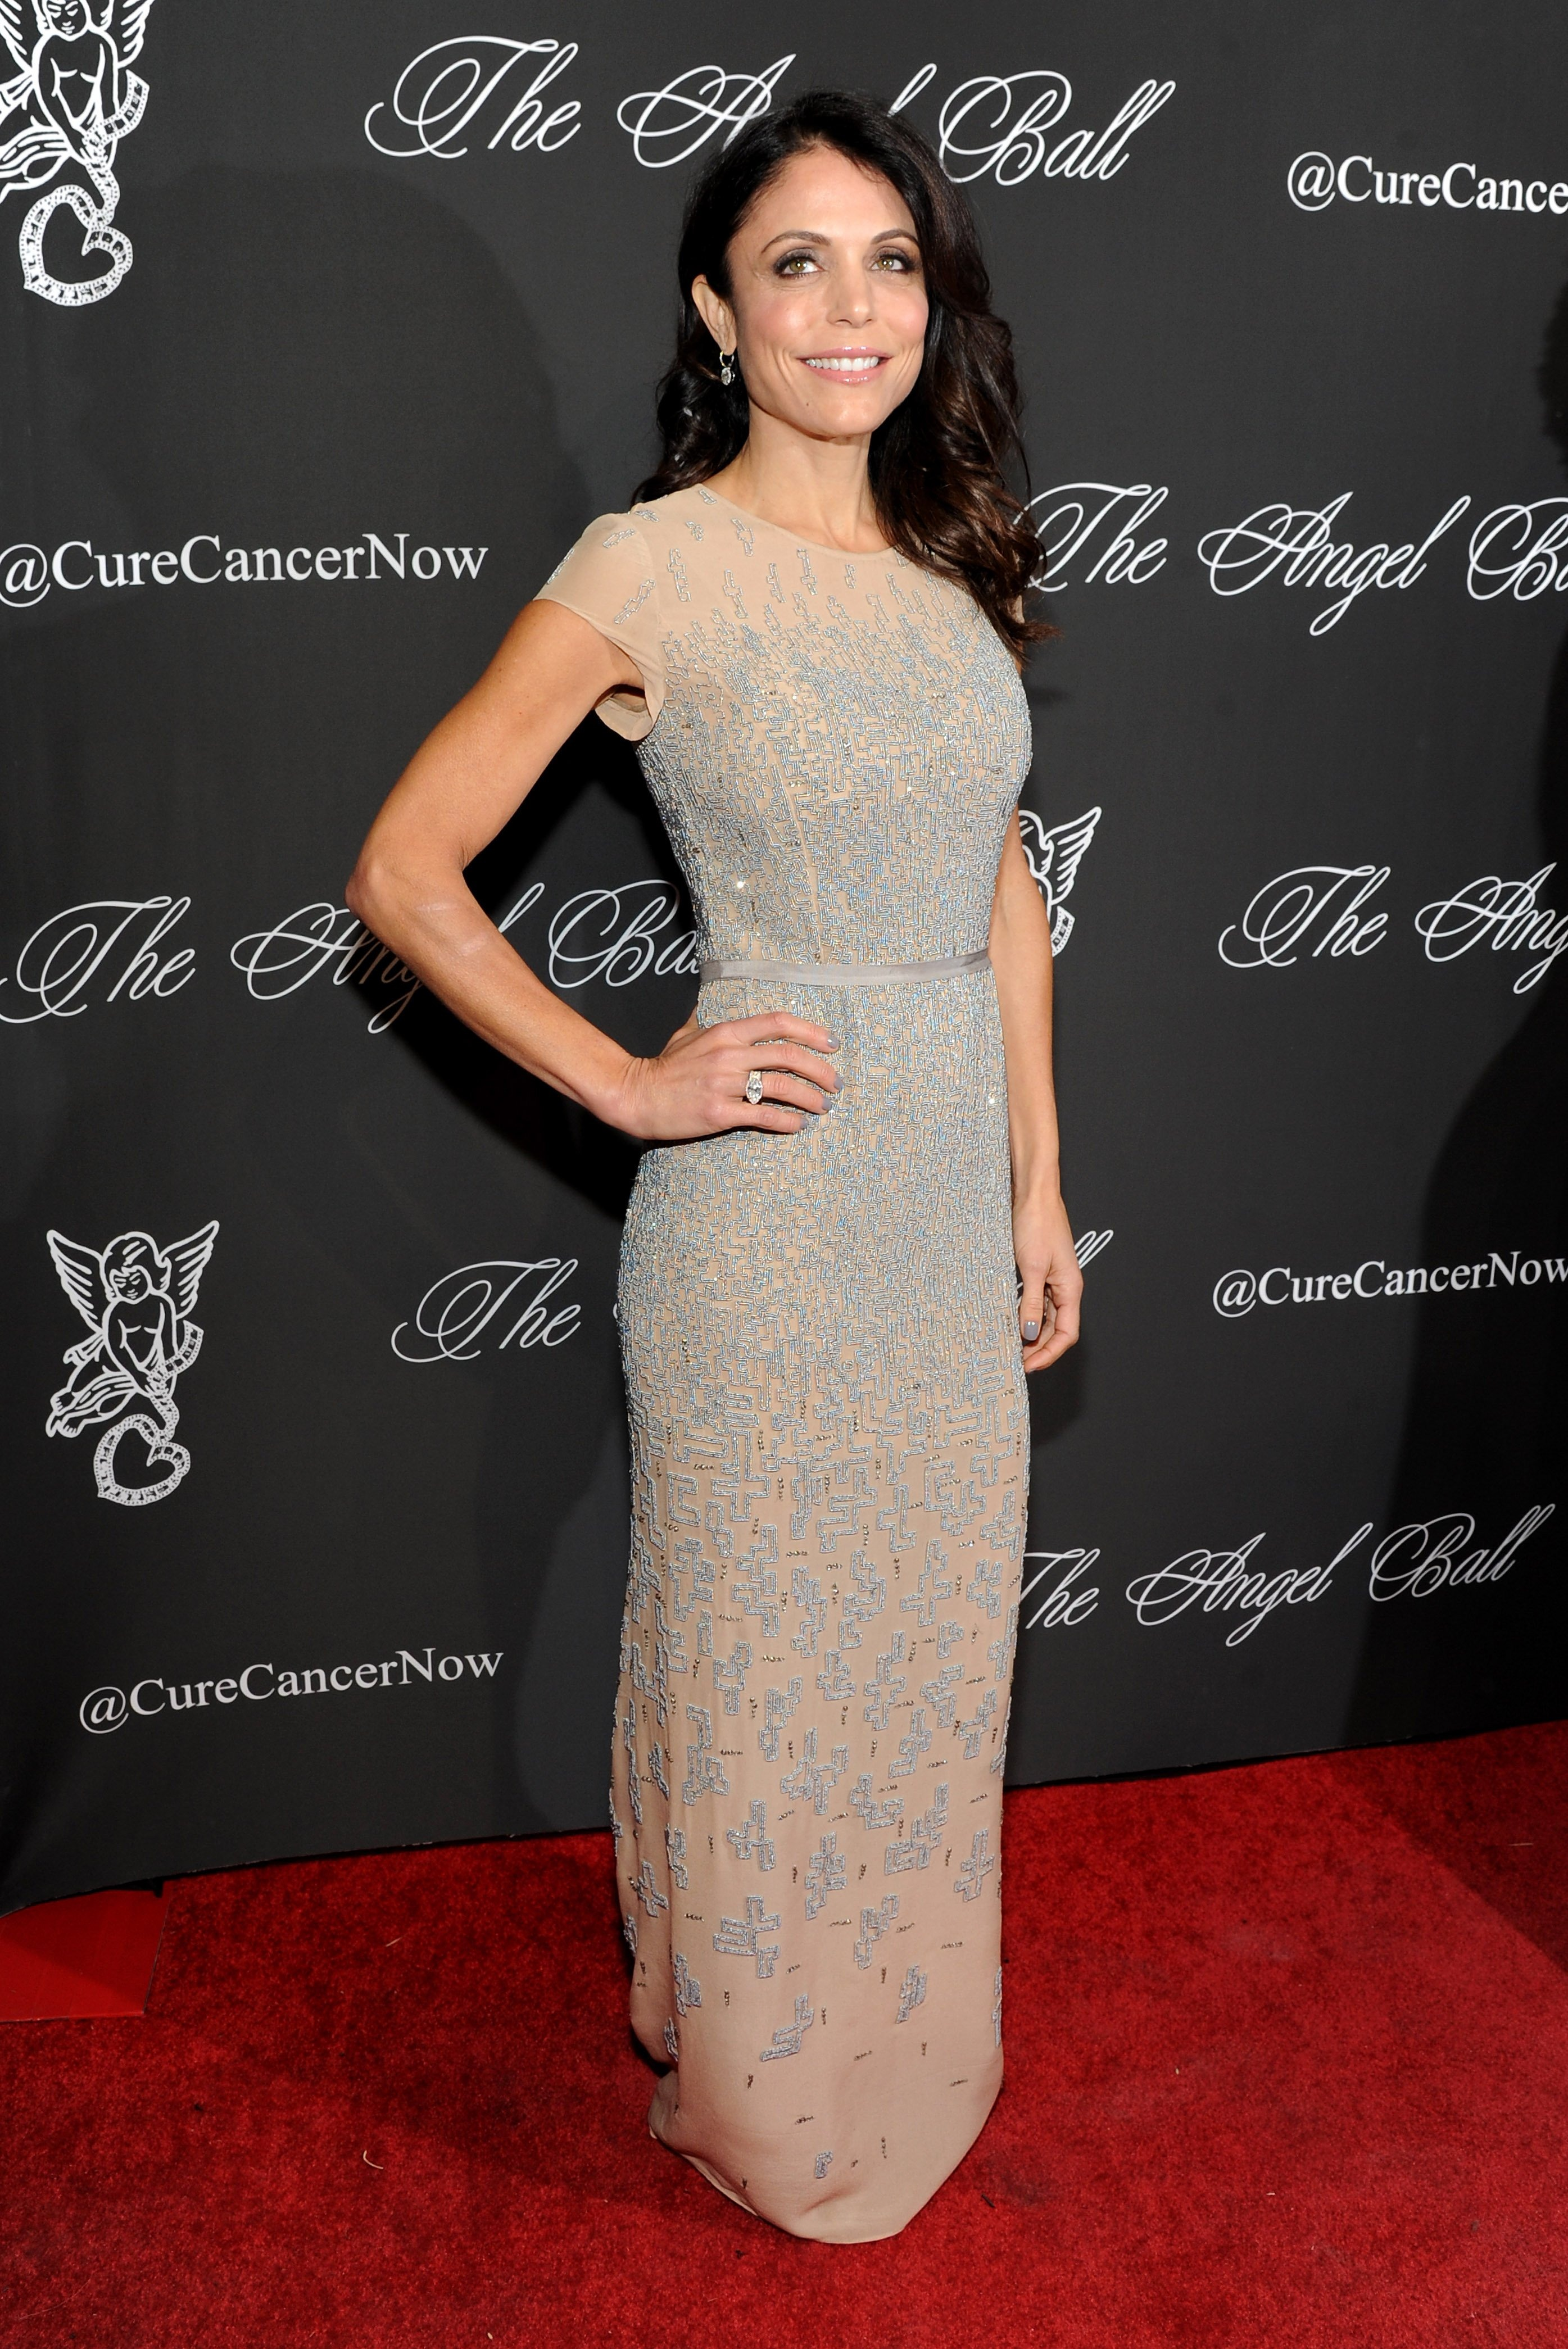 Bethenny Frankel attends Angel Ball 2014 at Cipriani Wall Street on Oct. 20, 2014 in New York City.